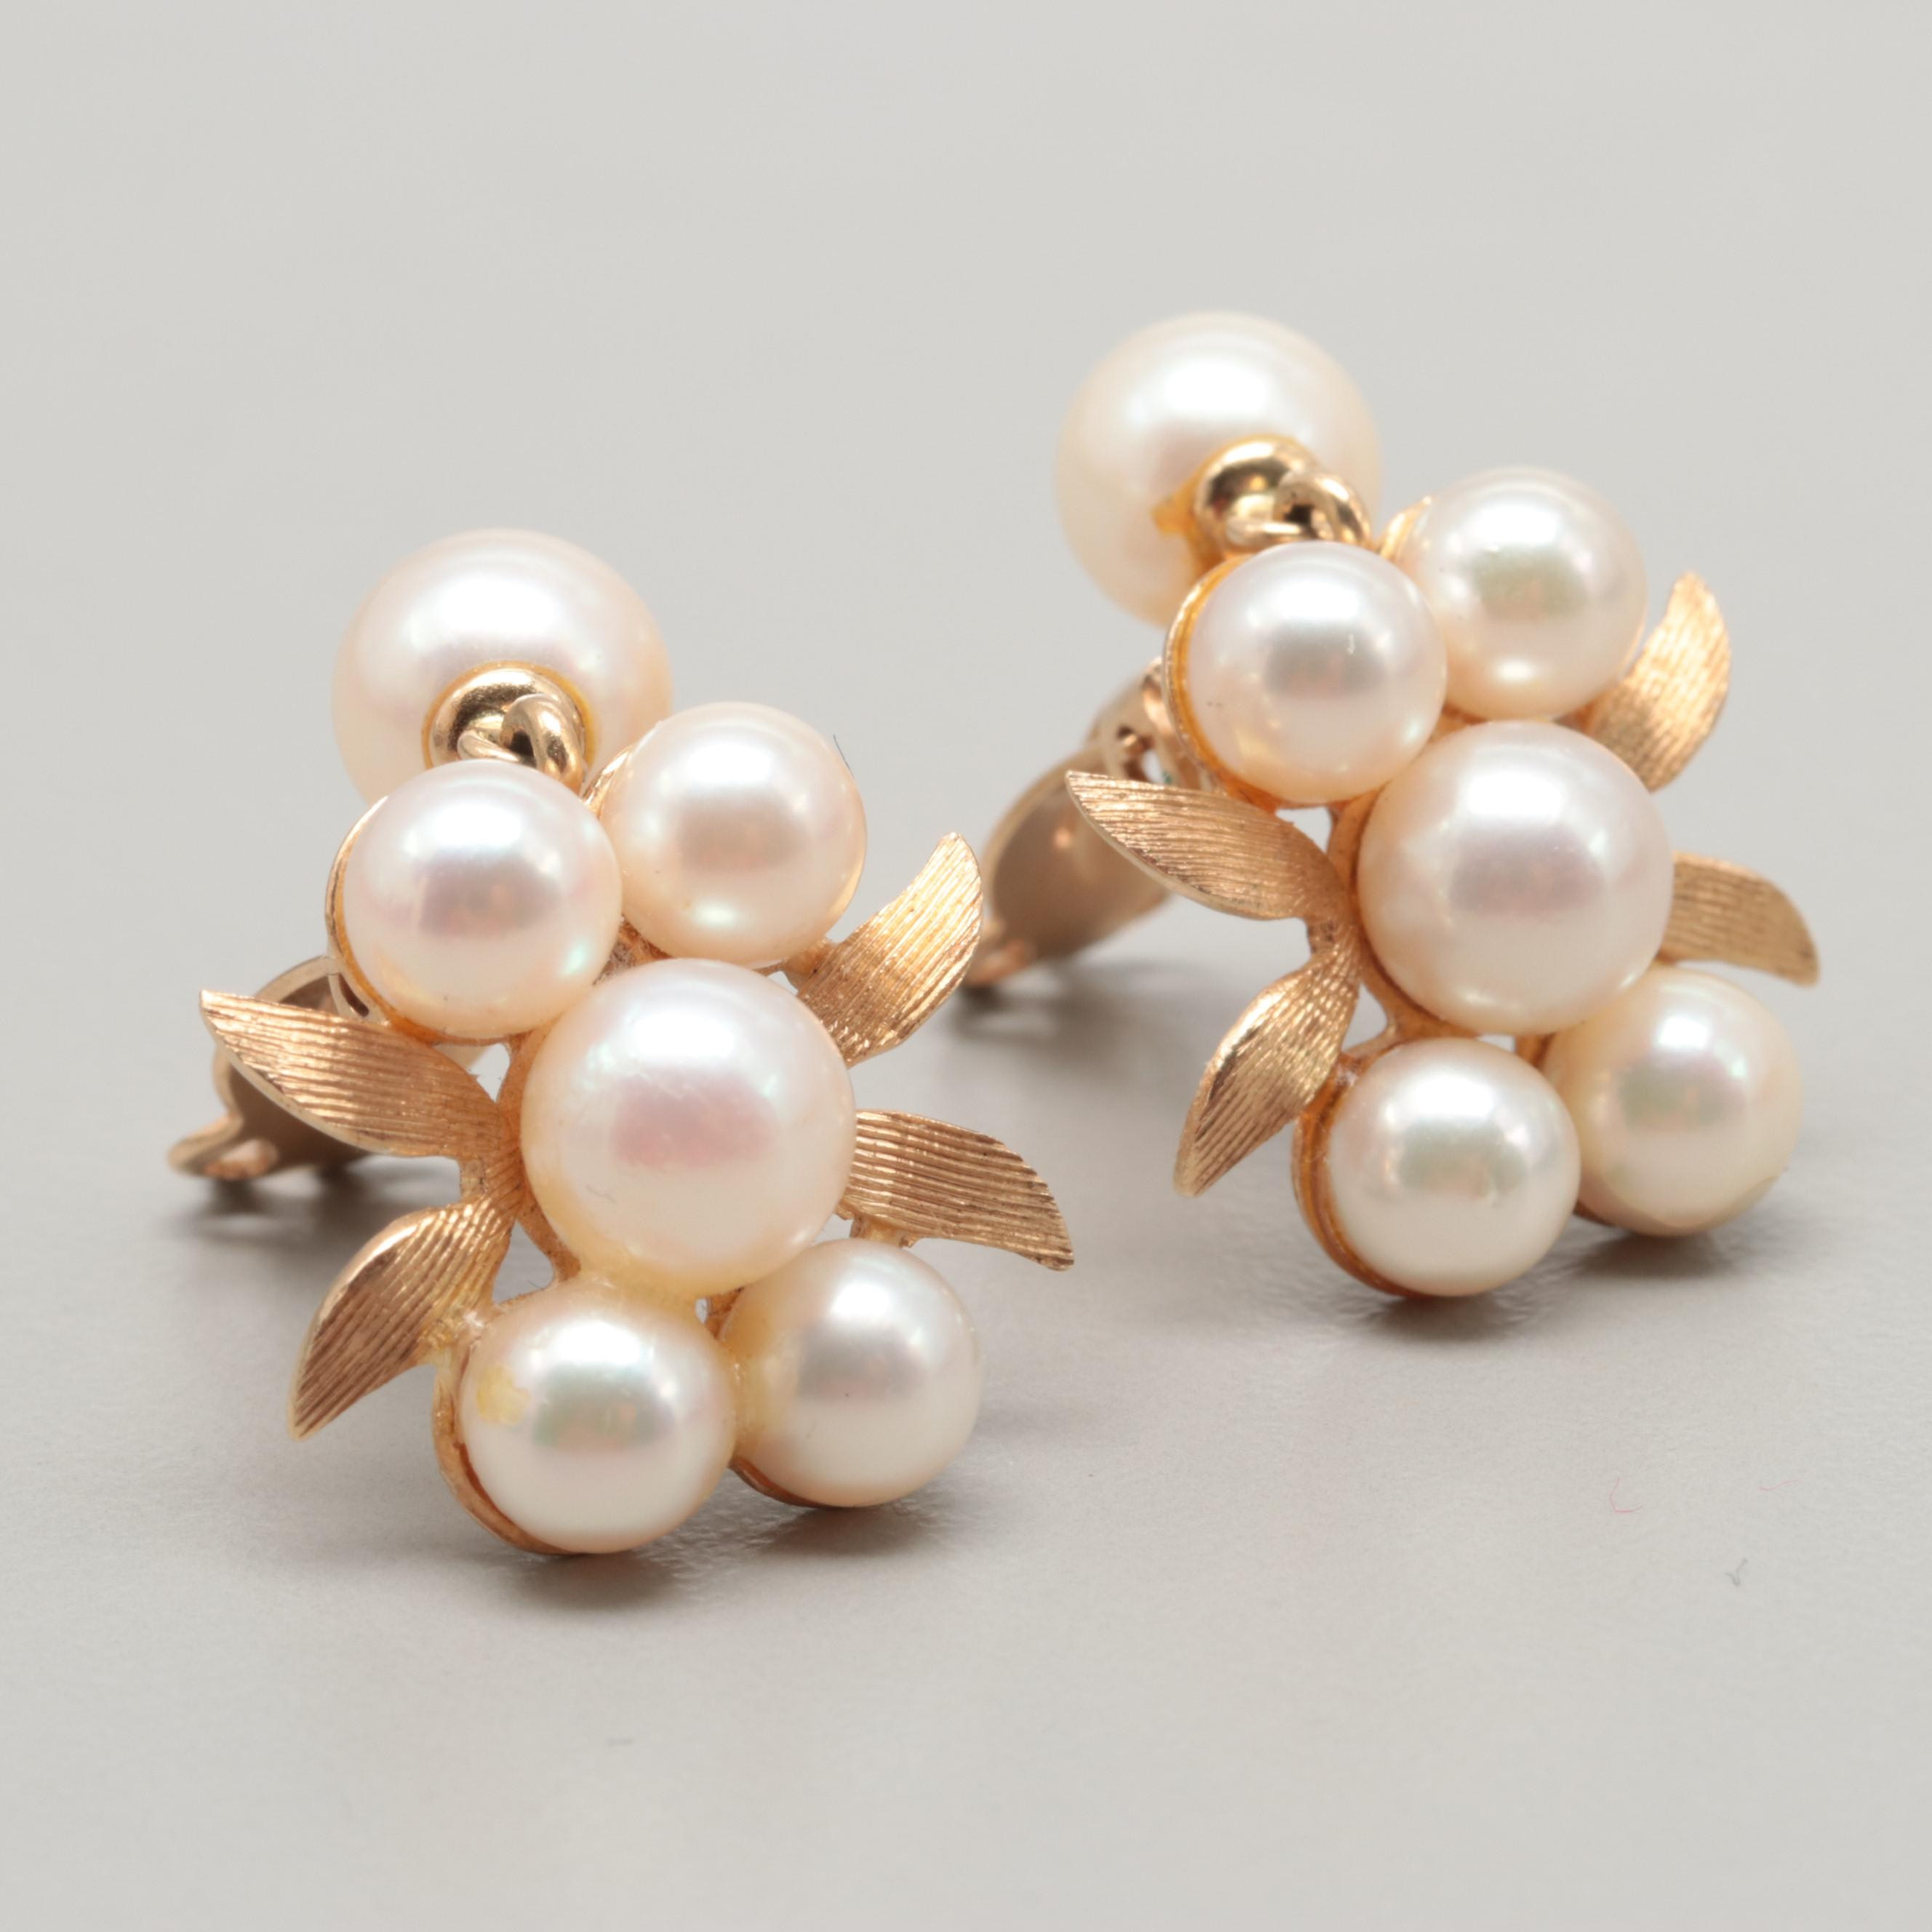 14K Yellow Gold Cultured Pearl Foliate Motif Clip-On Earrings